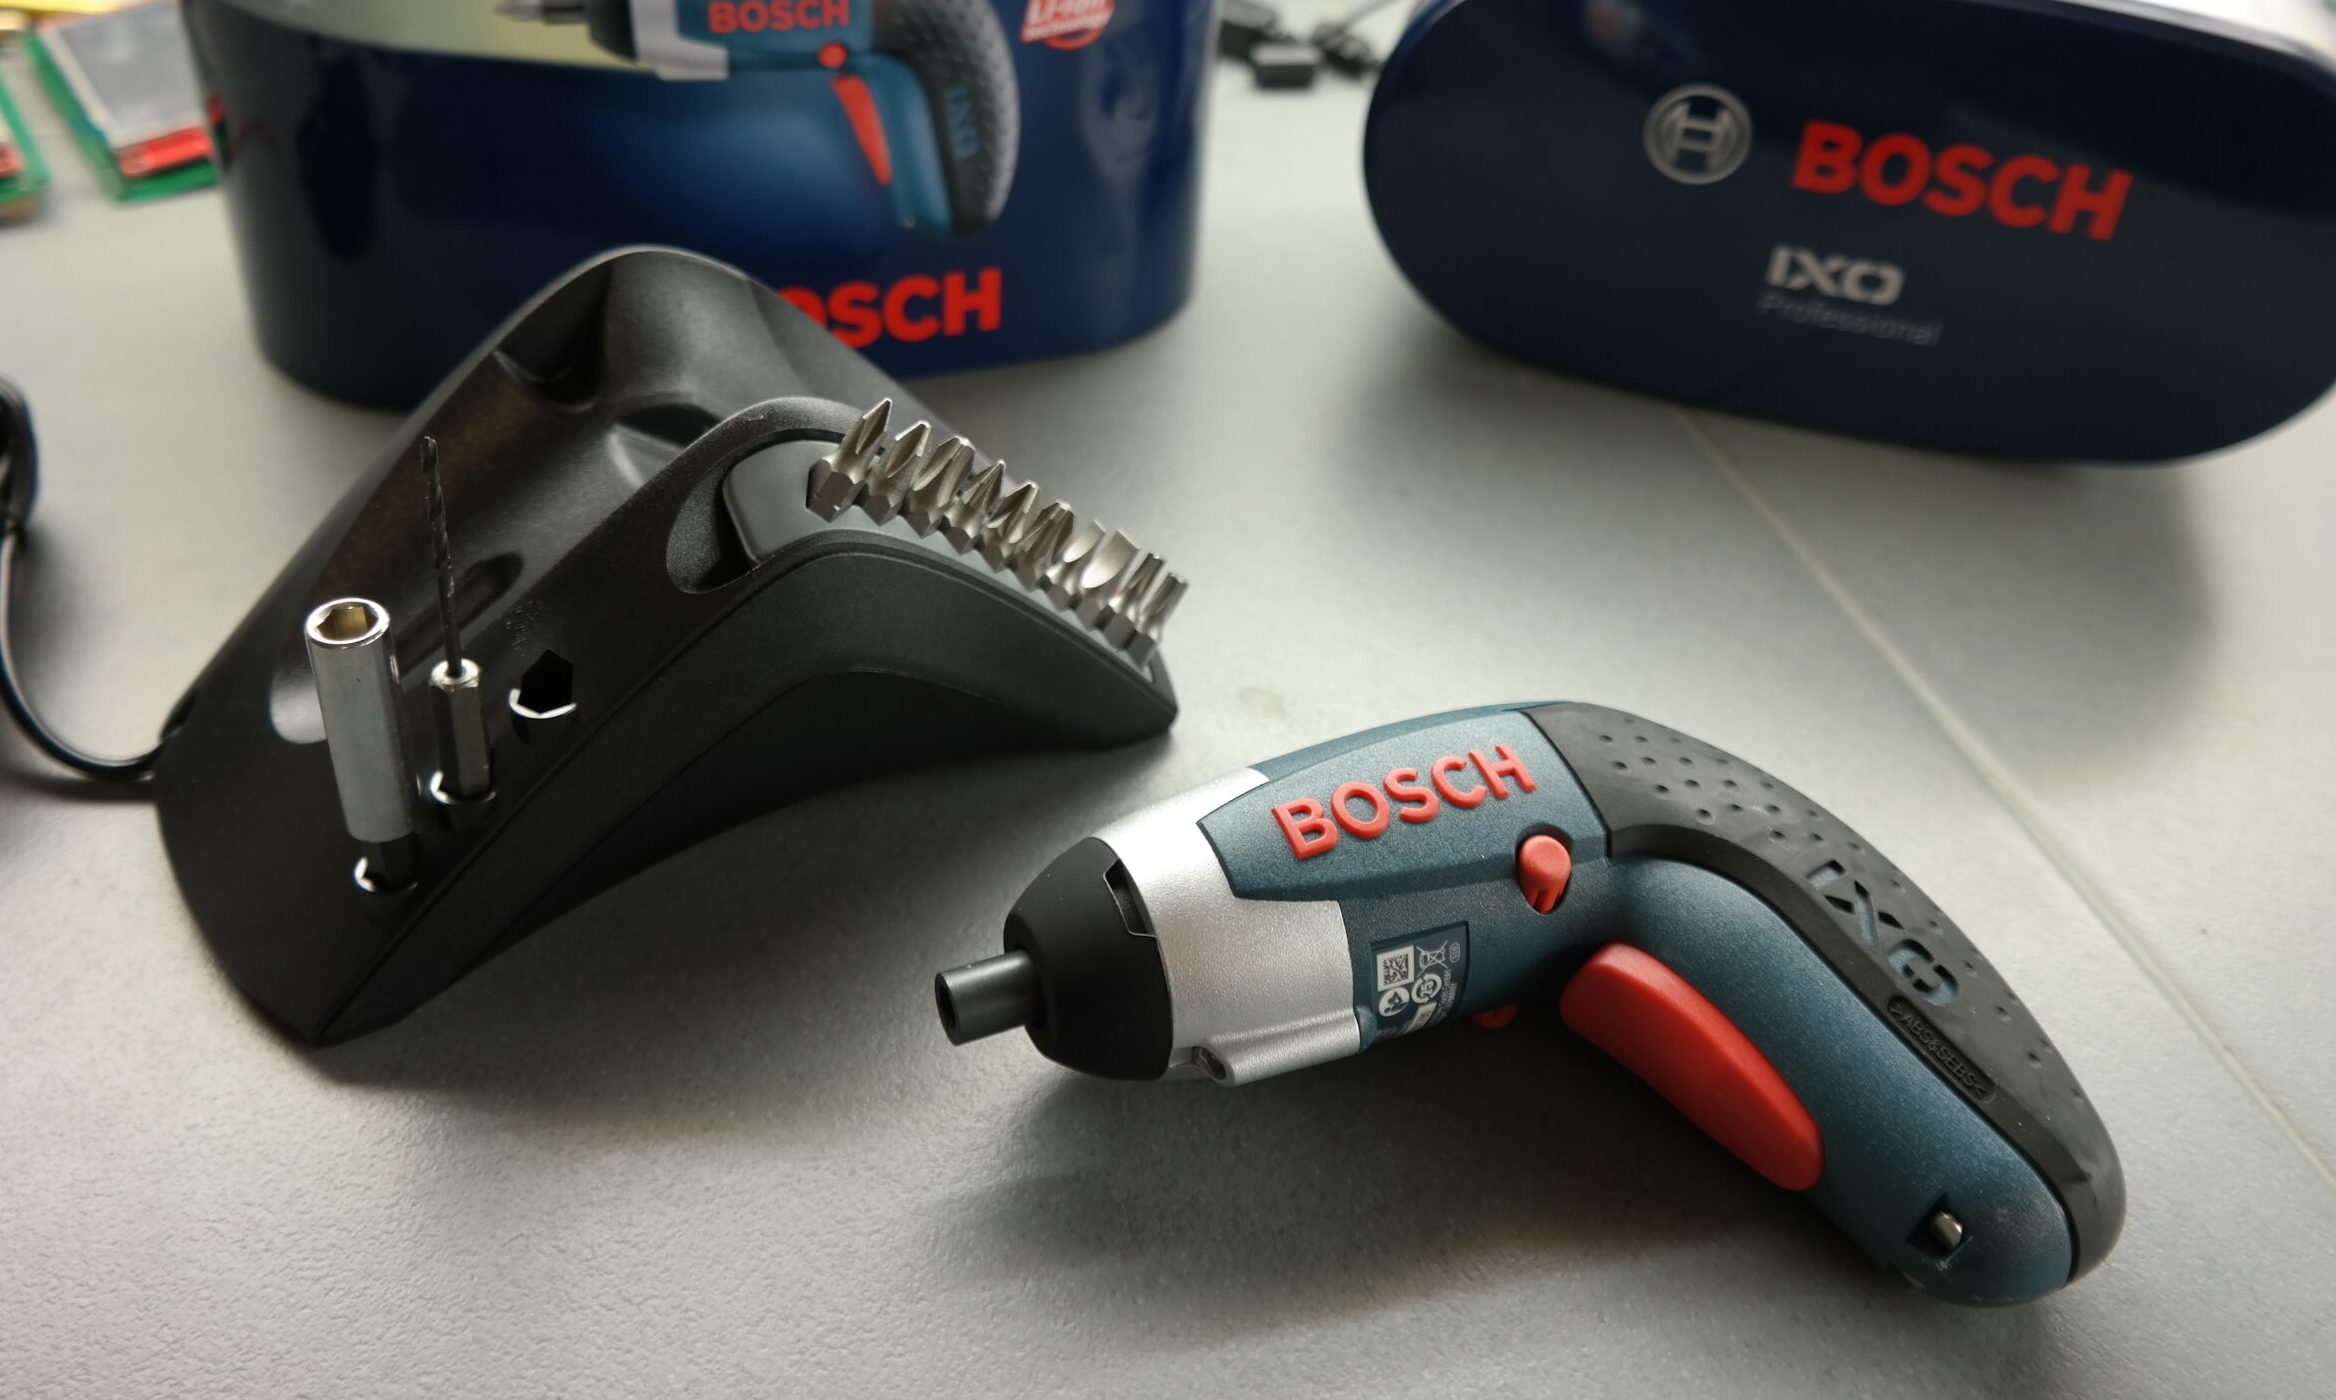 Bosch IXO 3 screwdriver offers high efficiency and performance